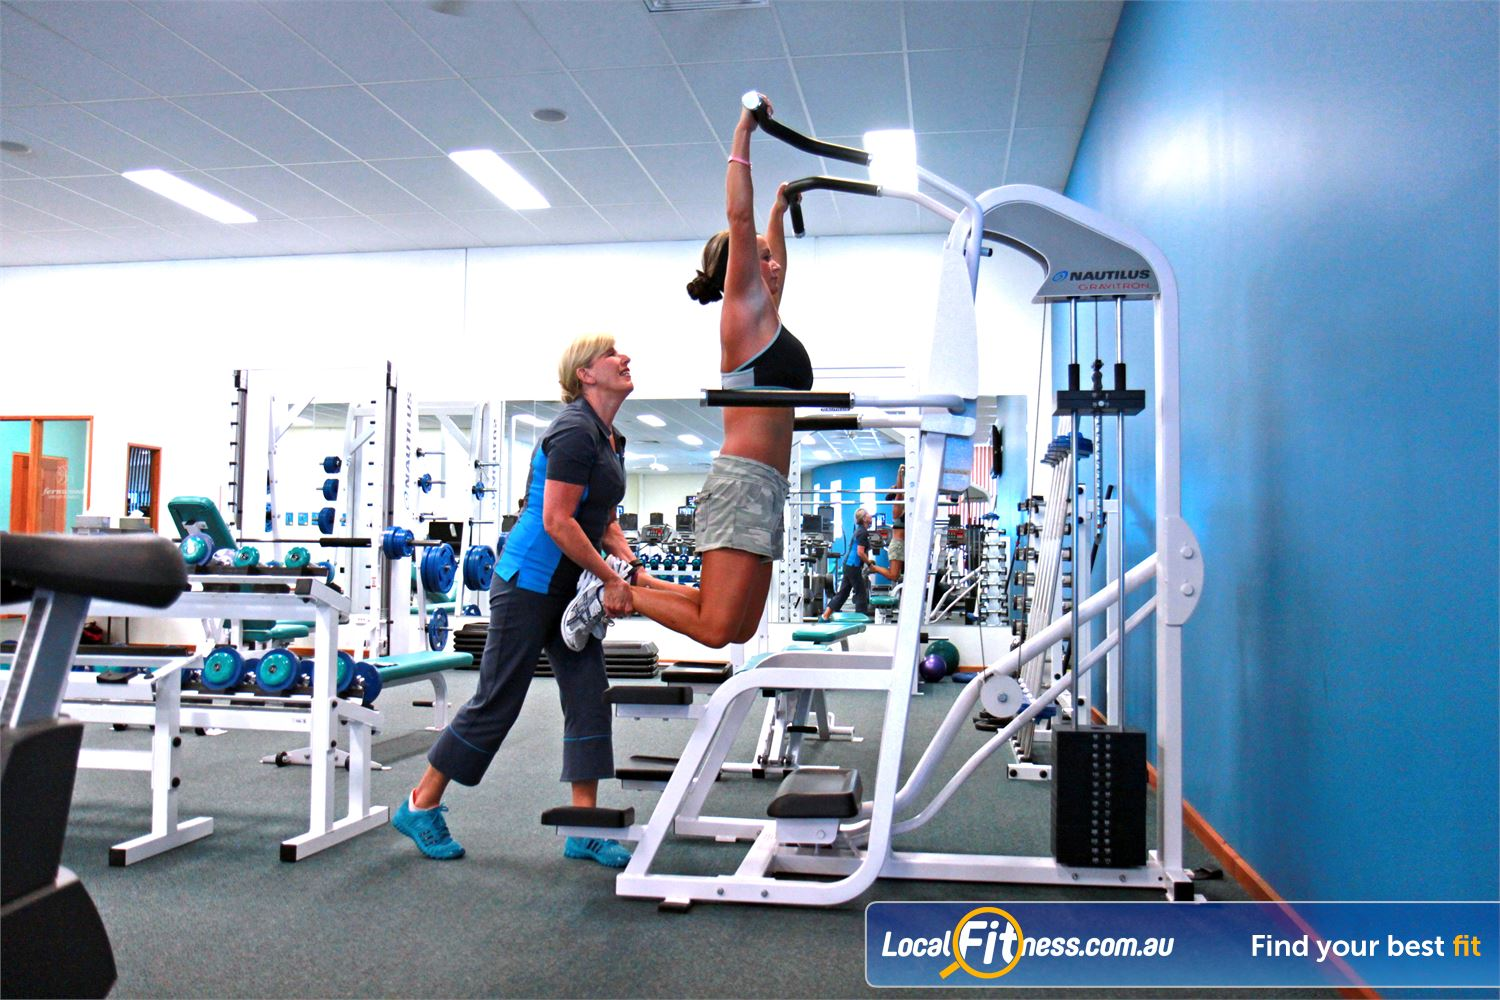 Fernwood Fitness Waurn Ponds We have the right Waurn Ponds Plaza gym equipment to help with women's weight loss and strength.